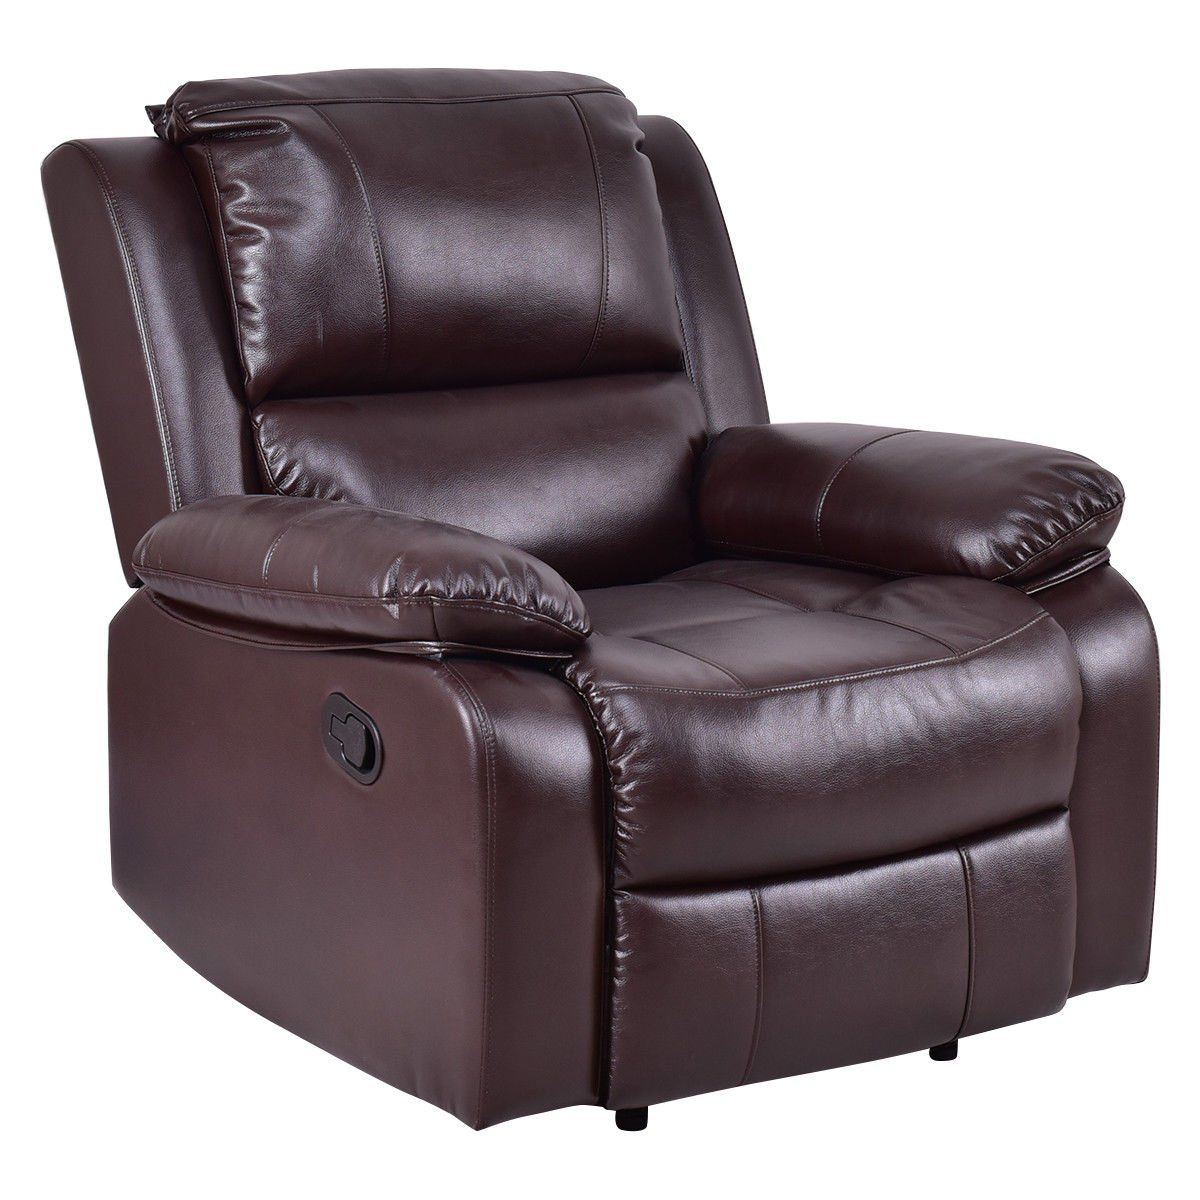 Giantex Recliner Sofa Chair Pu Leather Ergonomic Lounge Manual Padded Reclining Brown Want Extra Details Click In 2020 Reclining Sofa Lounge Chair Best Leather Sofa